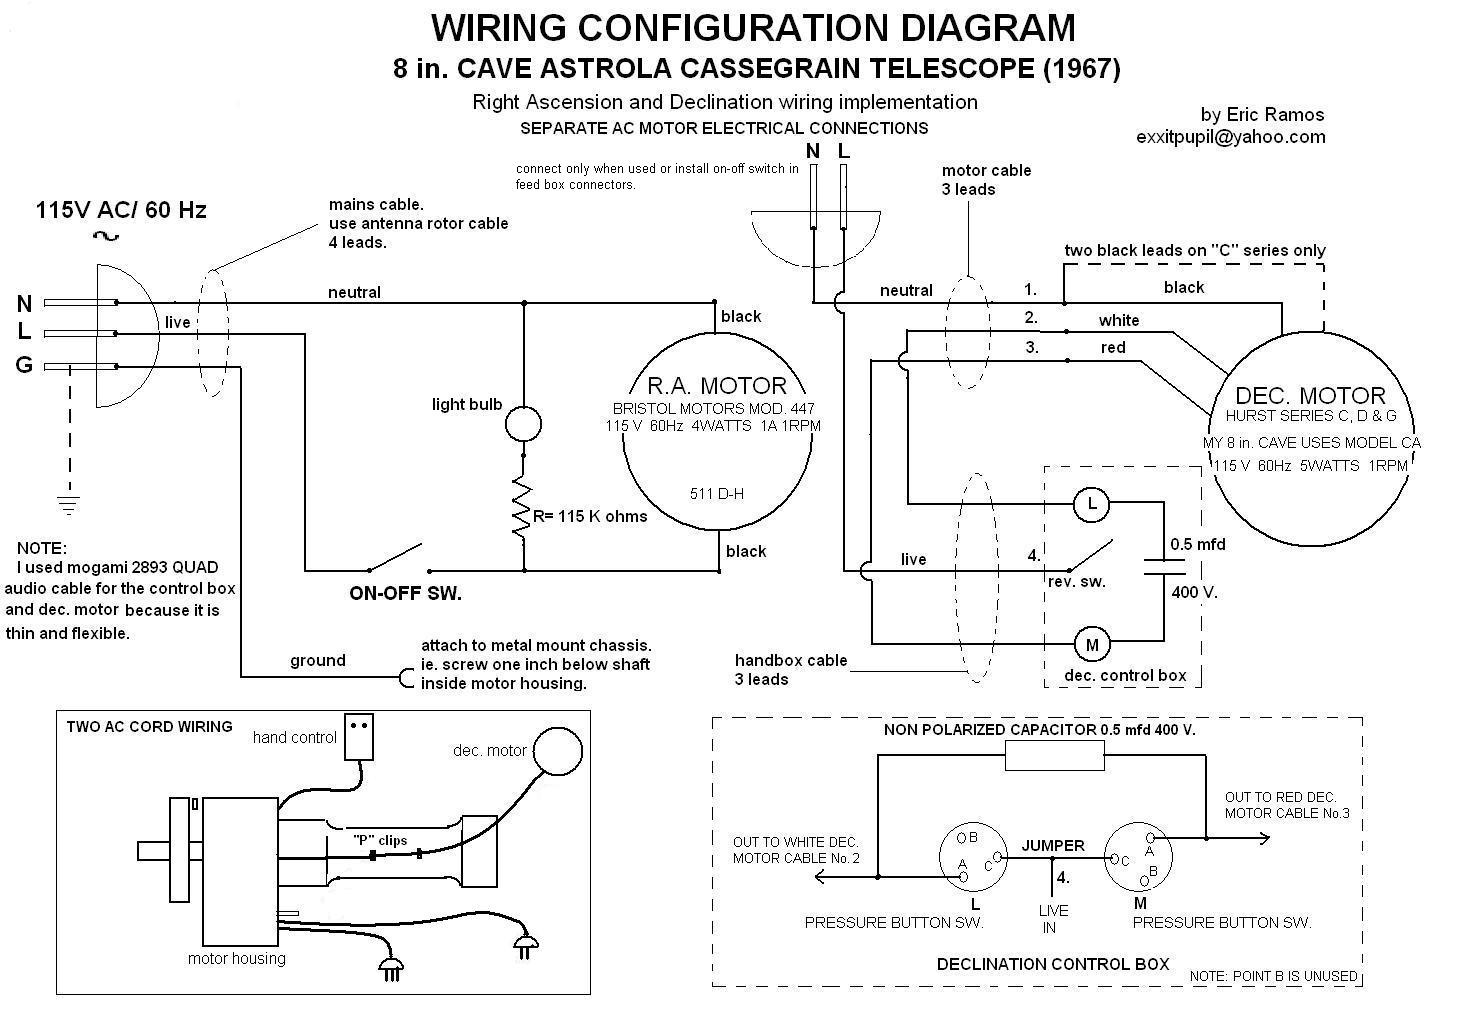 Cave 12 5 Mount - Wiring Question